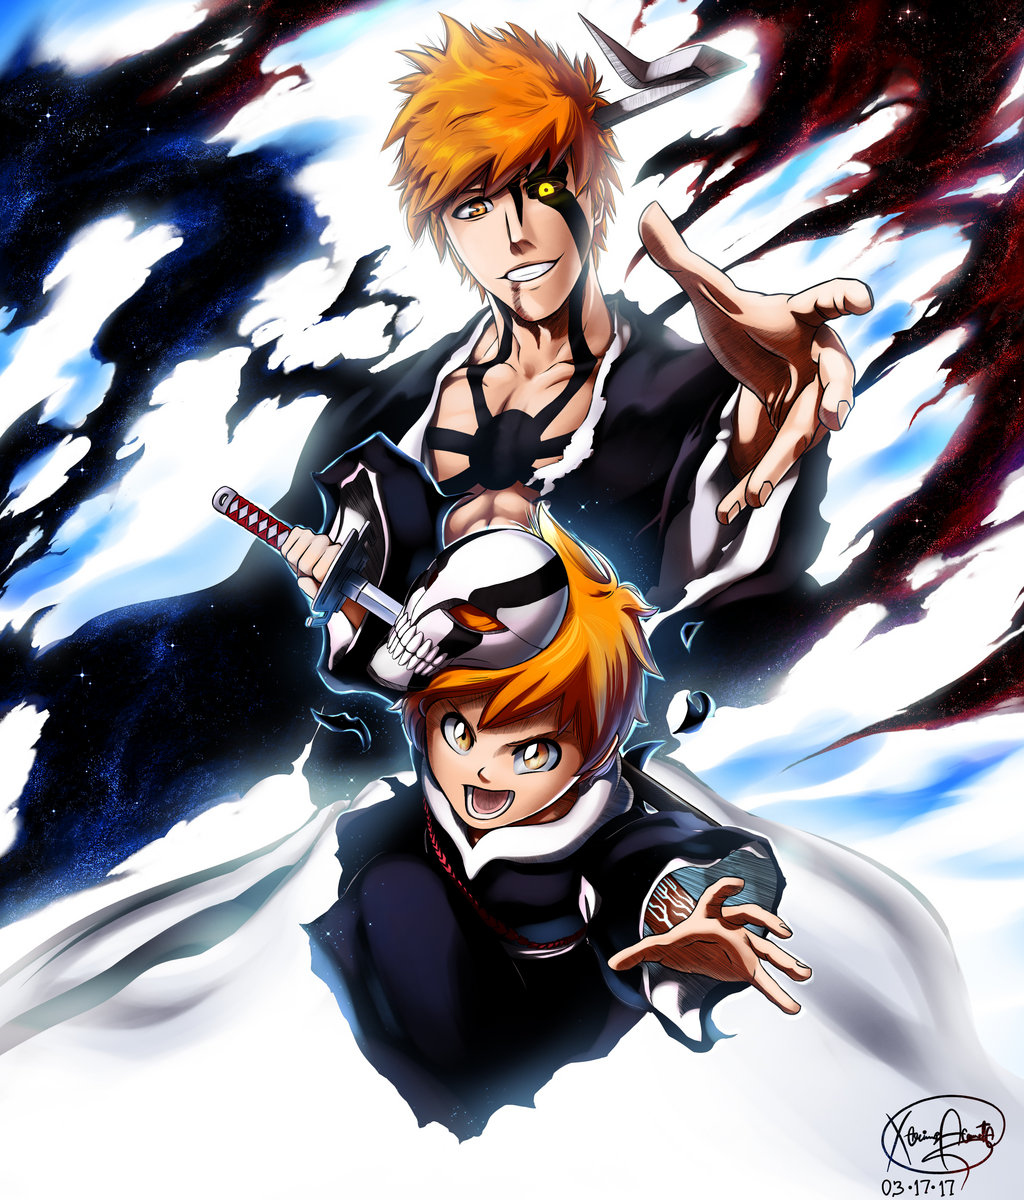 Bleach fade to black full movie english dub downloadinstmank by.